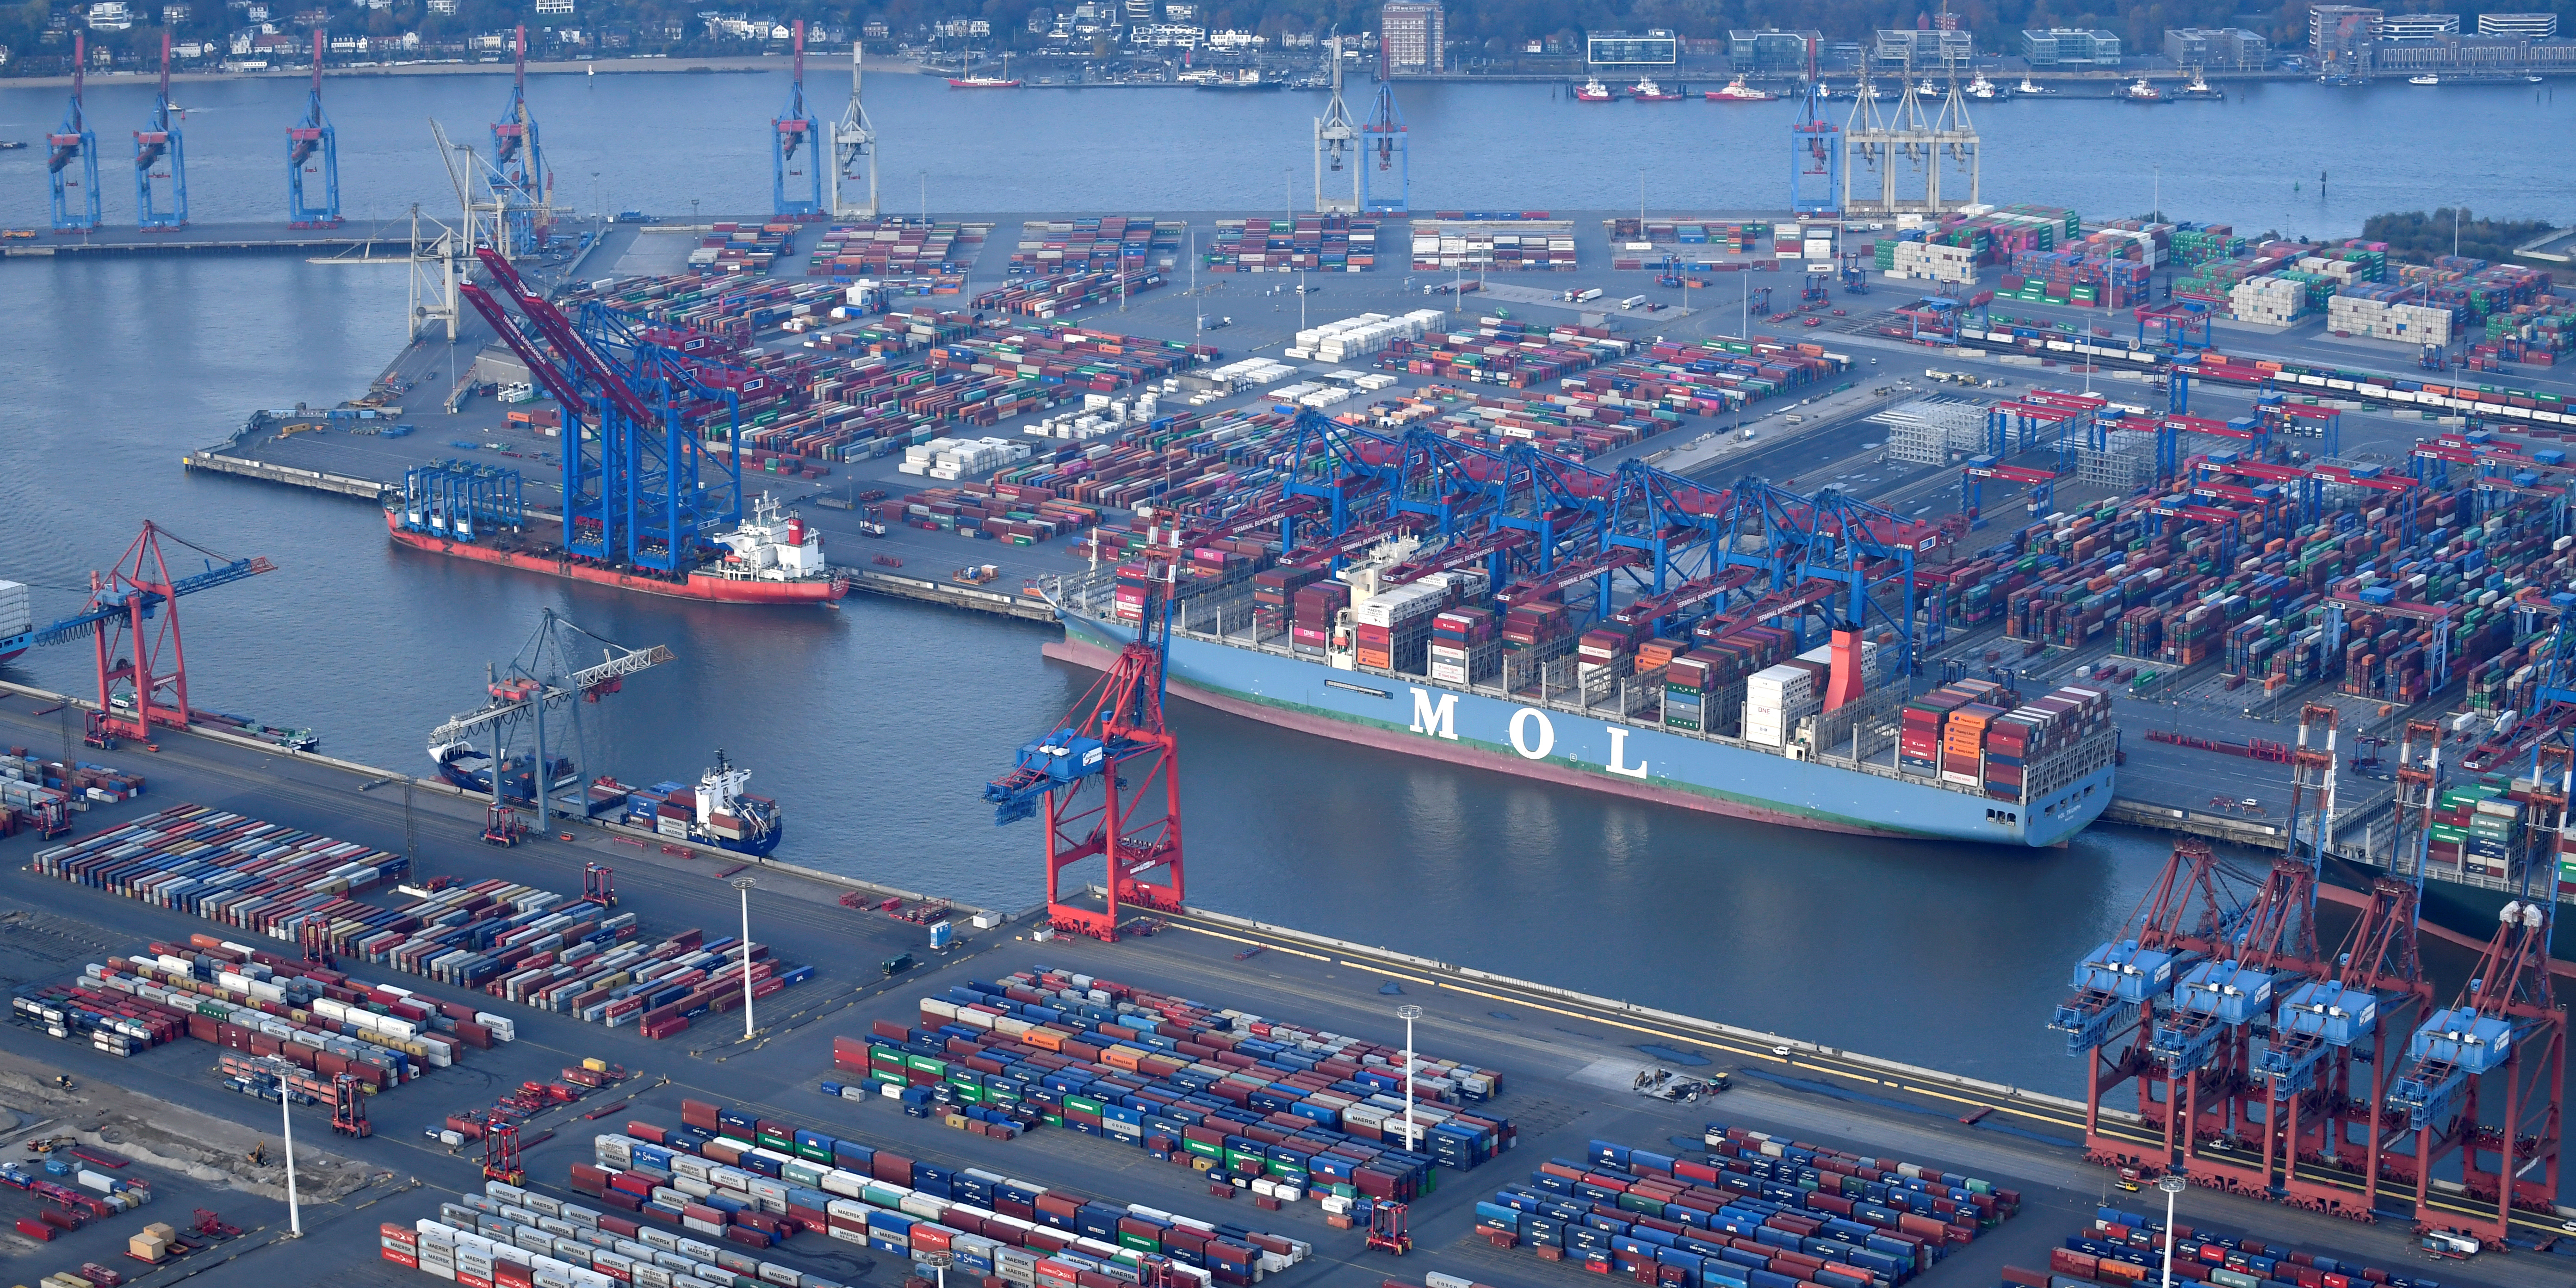 hambourg-port-allemagne-croissance-exportations-containers